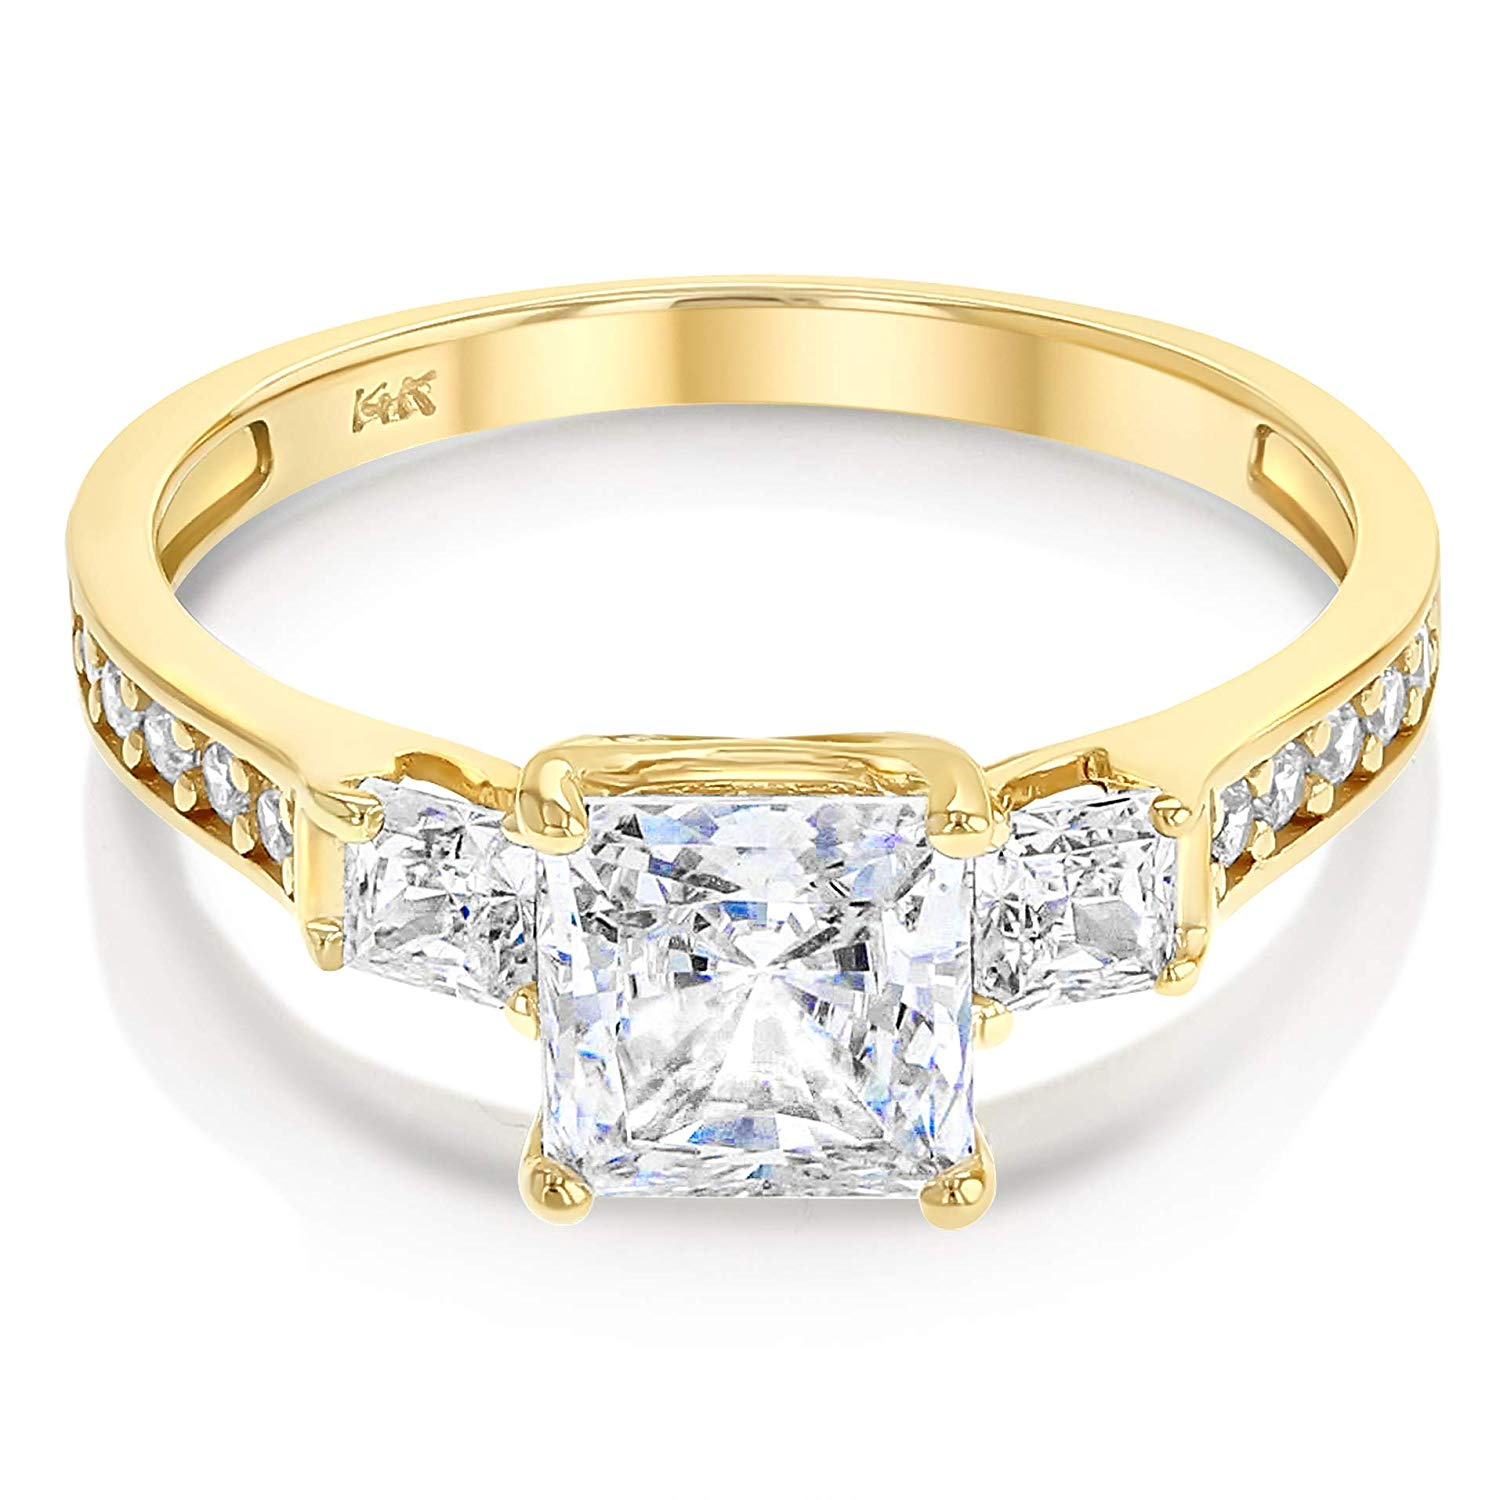 172e72905 Details about Ioka 14K Yellow / White Gold Cubic Zirconia 3 Stone Princess  Cut Engagement Ring